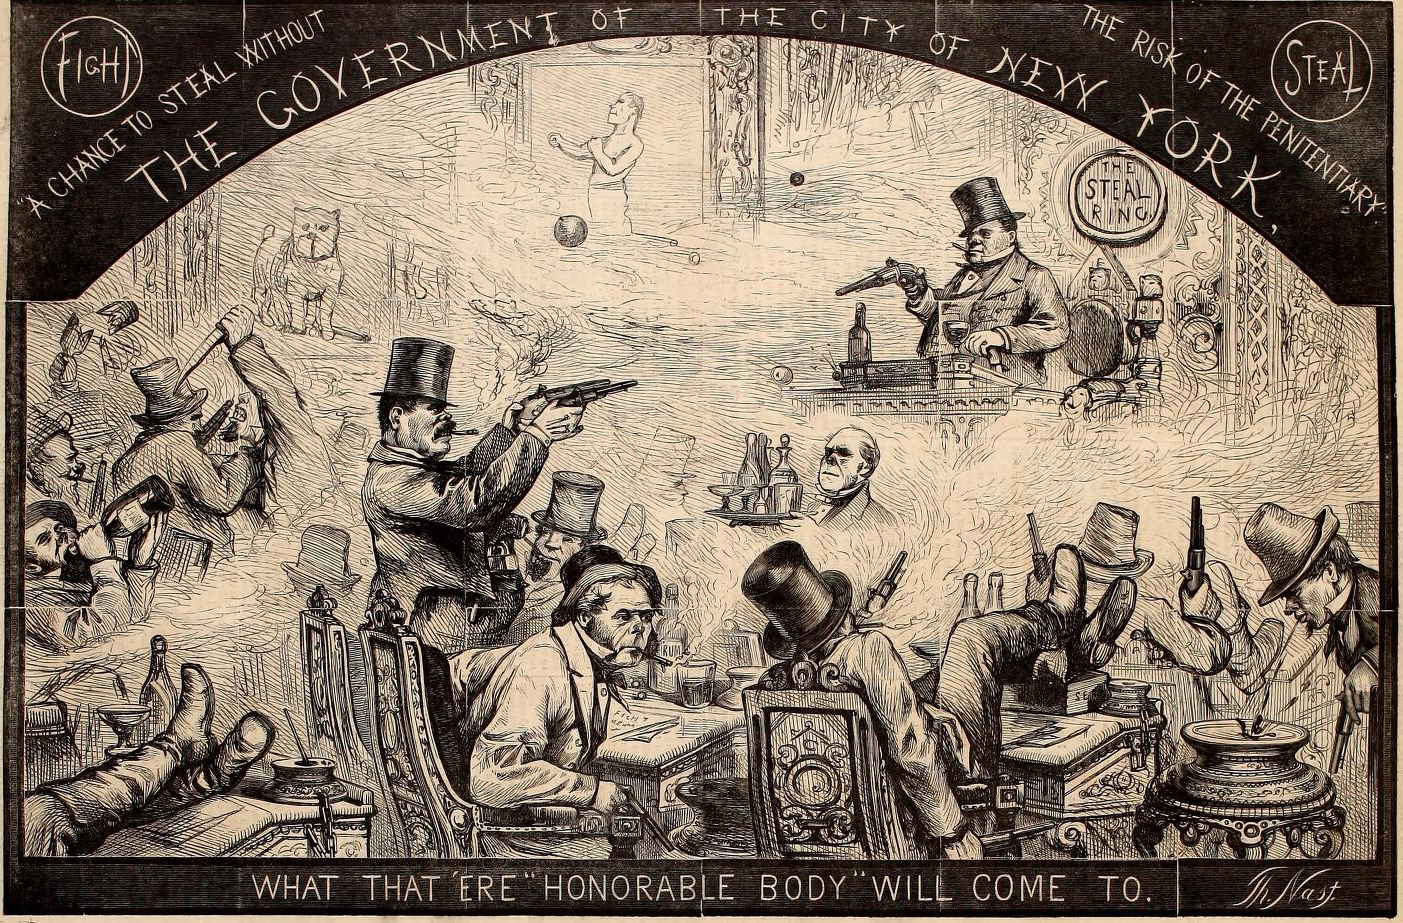 File:Government of the City of New York - 1867 Cartoon.png